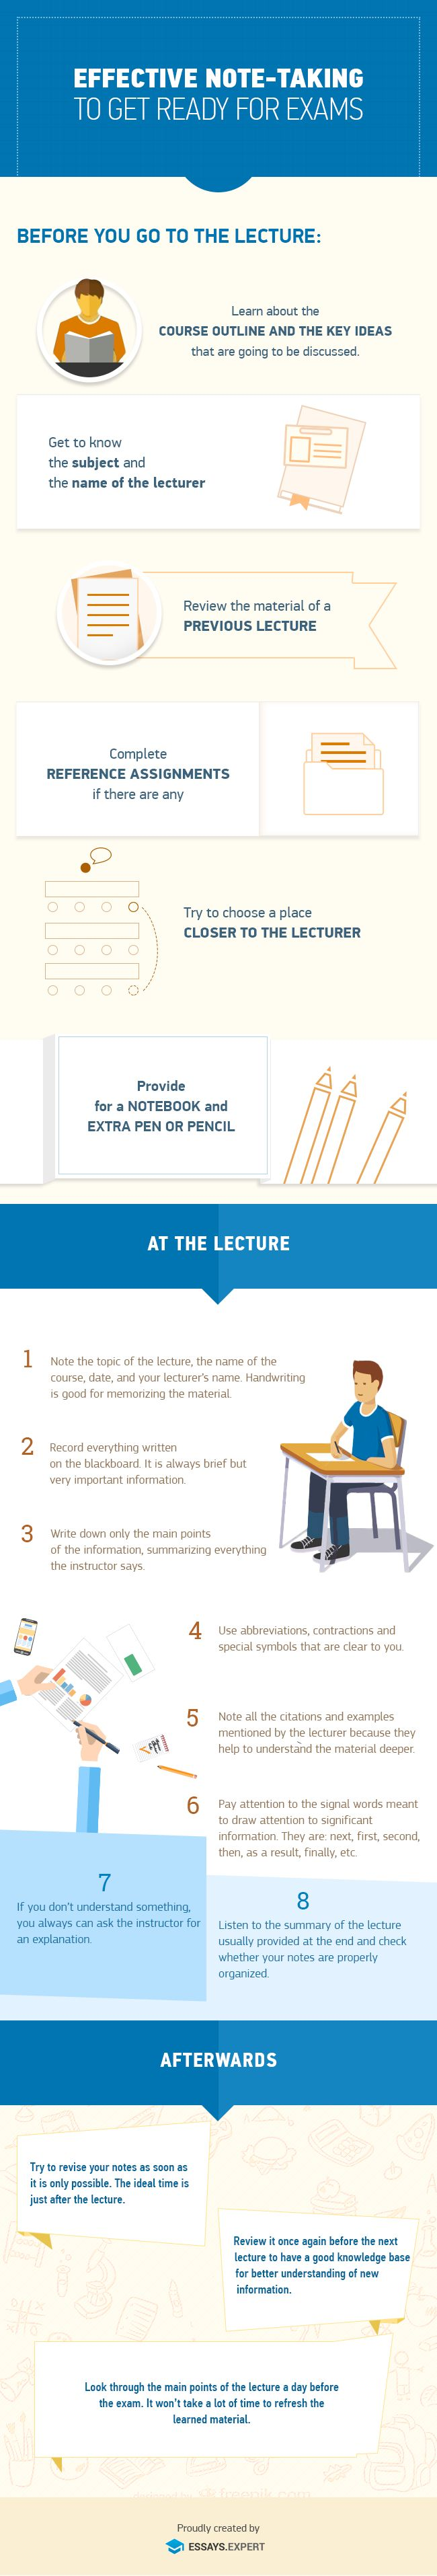 You need to get good grades to do well in college. We have provided you with great lecture tips for free. Learn how to properly take effective notes in your lecture, and how to do make revise them before your big exam.